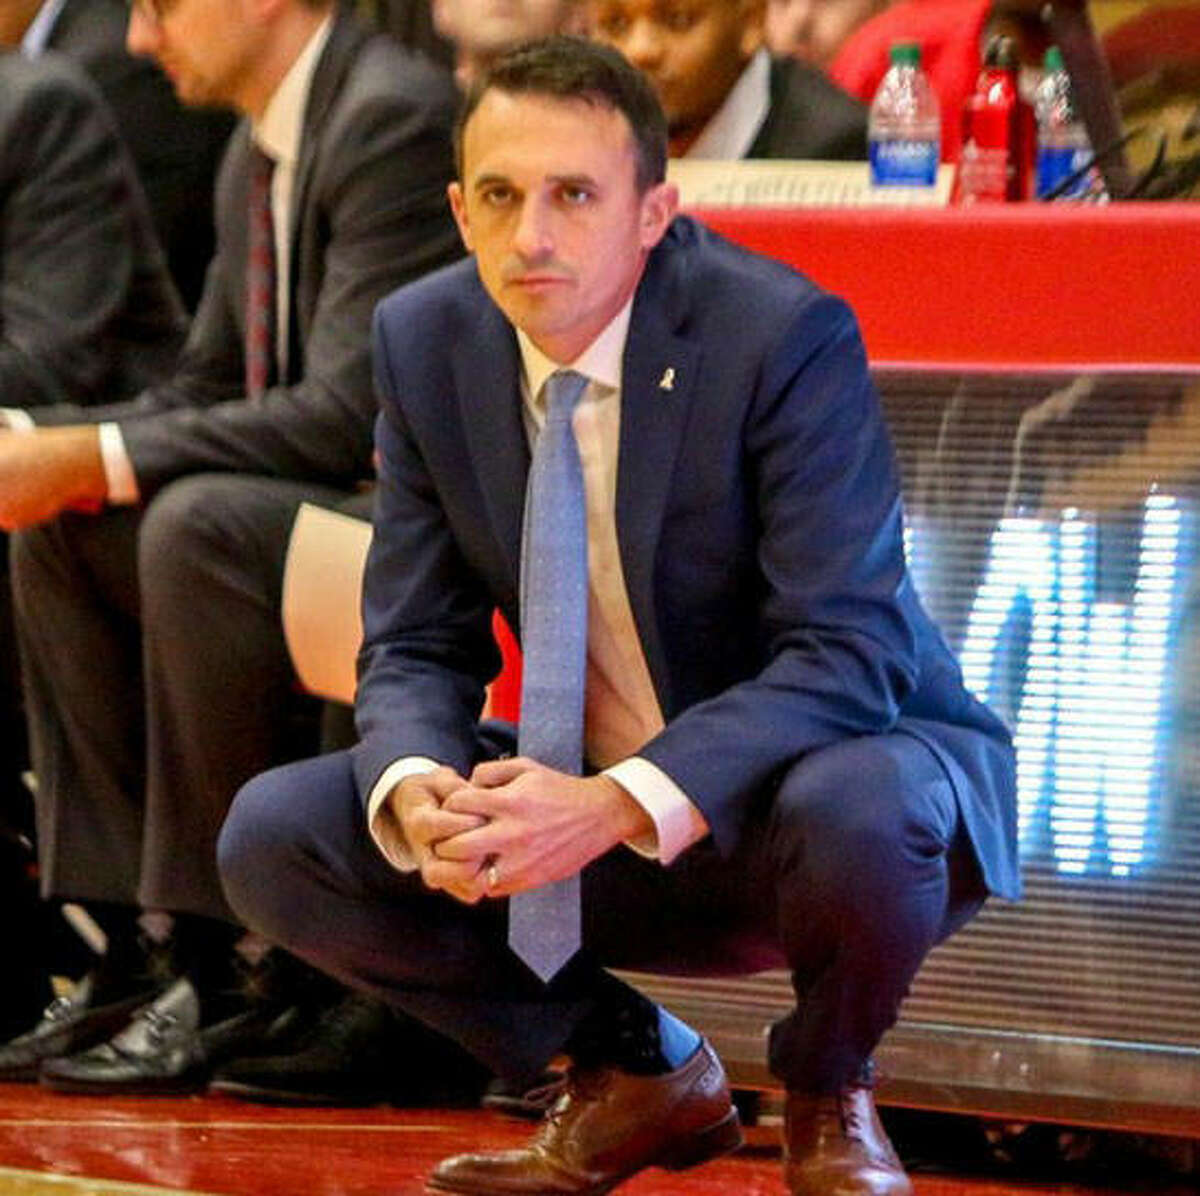 SIUE men's basketball coach Brian Barone watches from the sideline during a game last season.